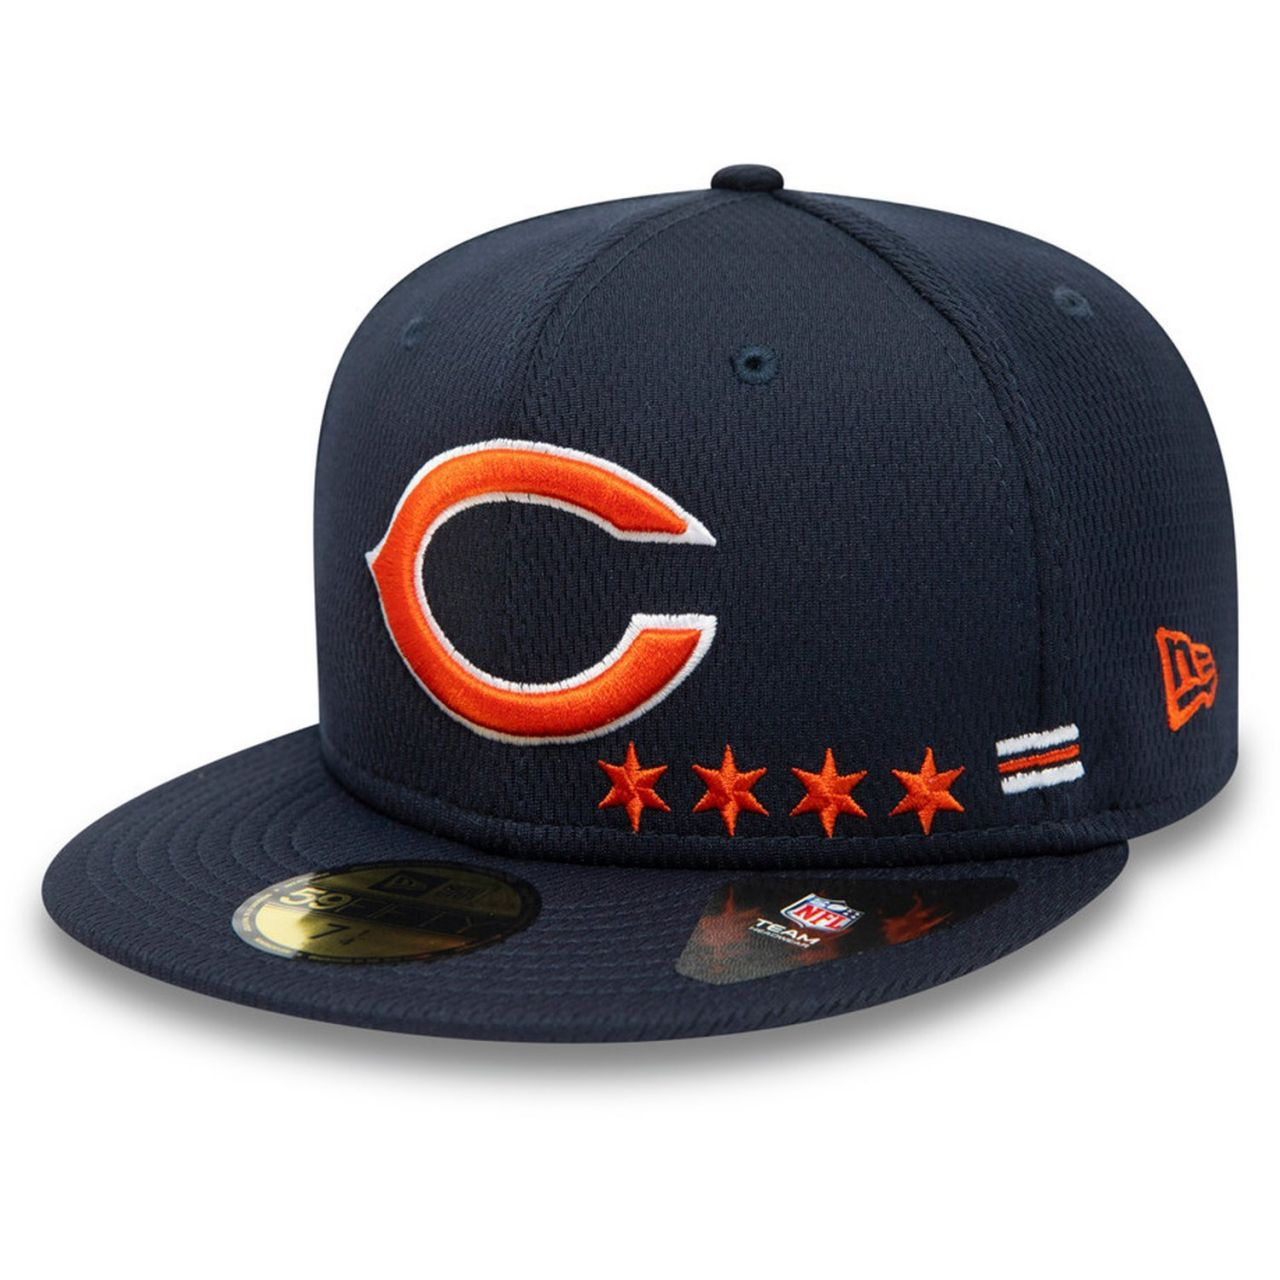 amfoo - New Era 59Fifty Fitted Cap - HOMETOWN Chicago Bears